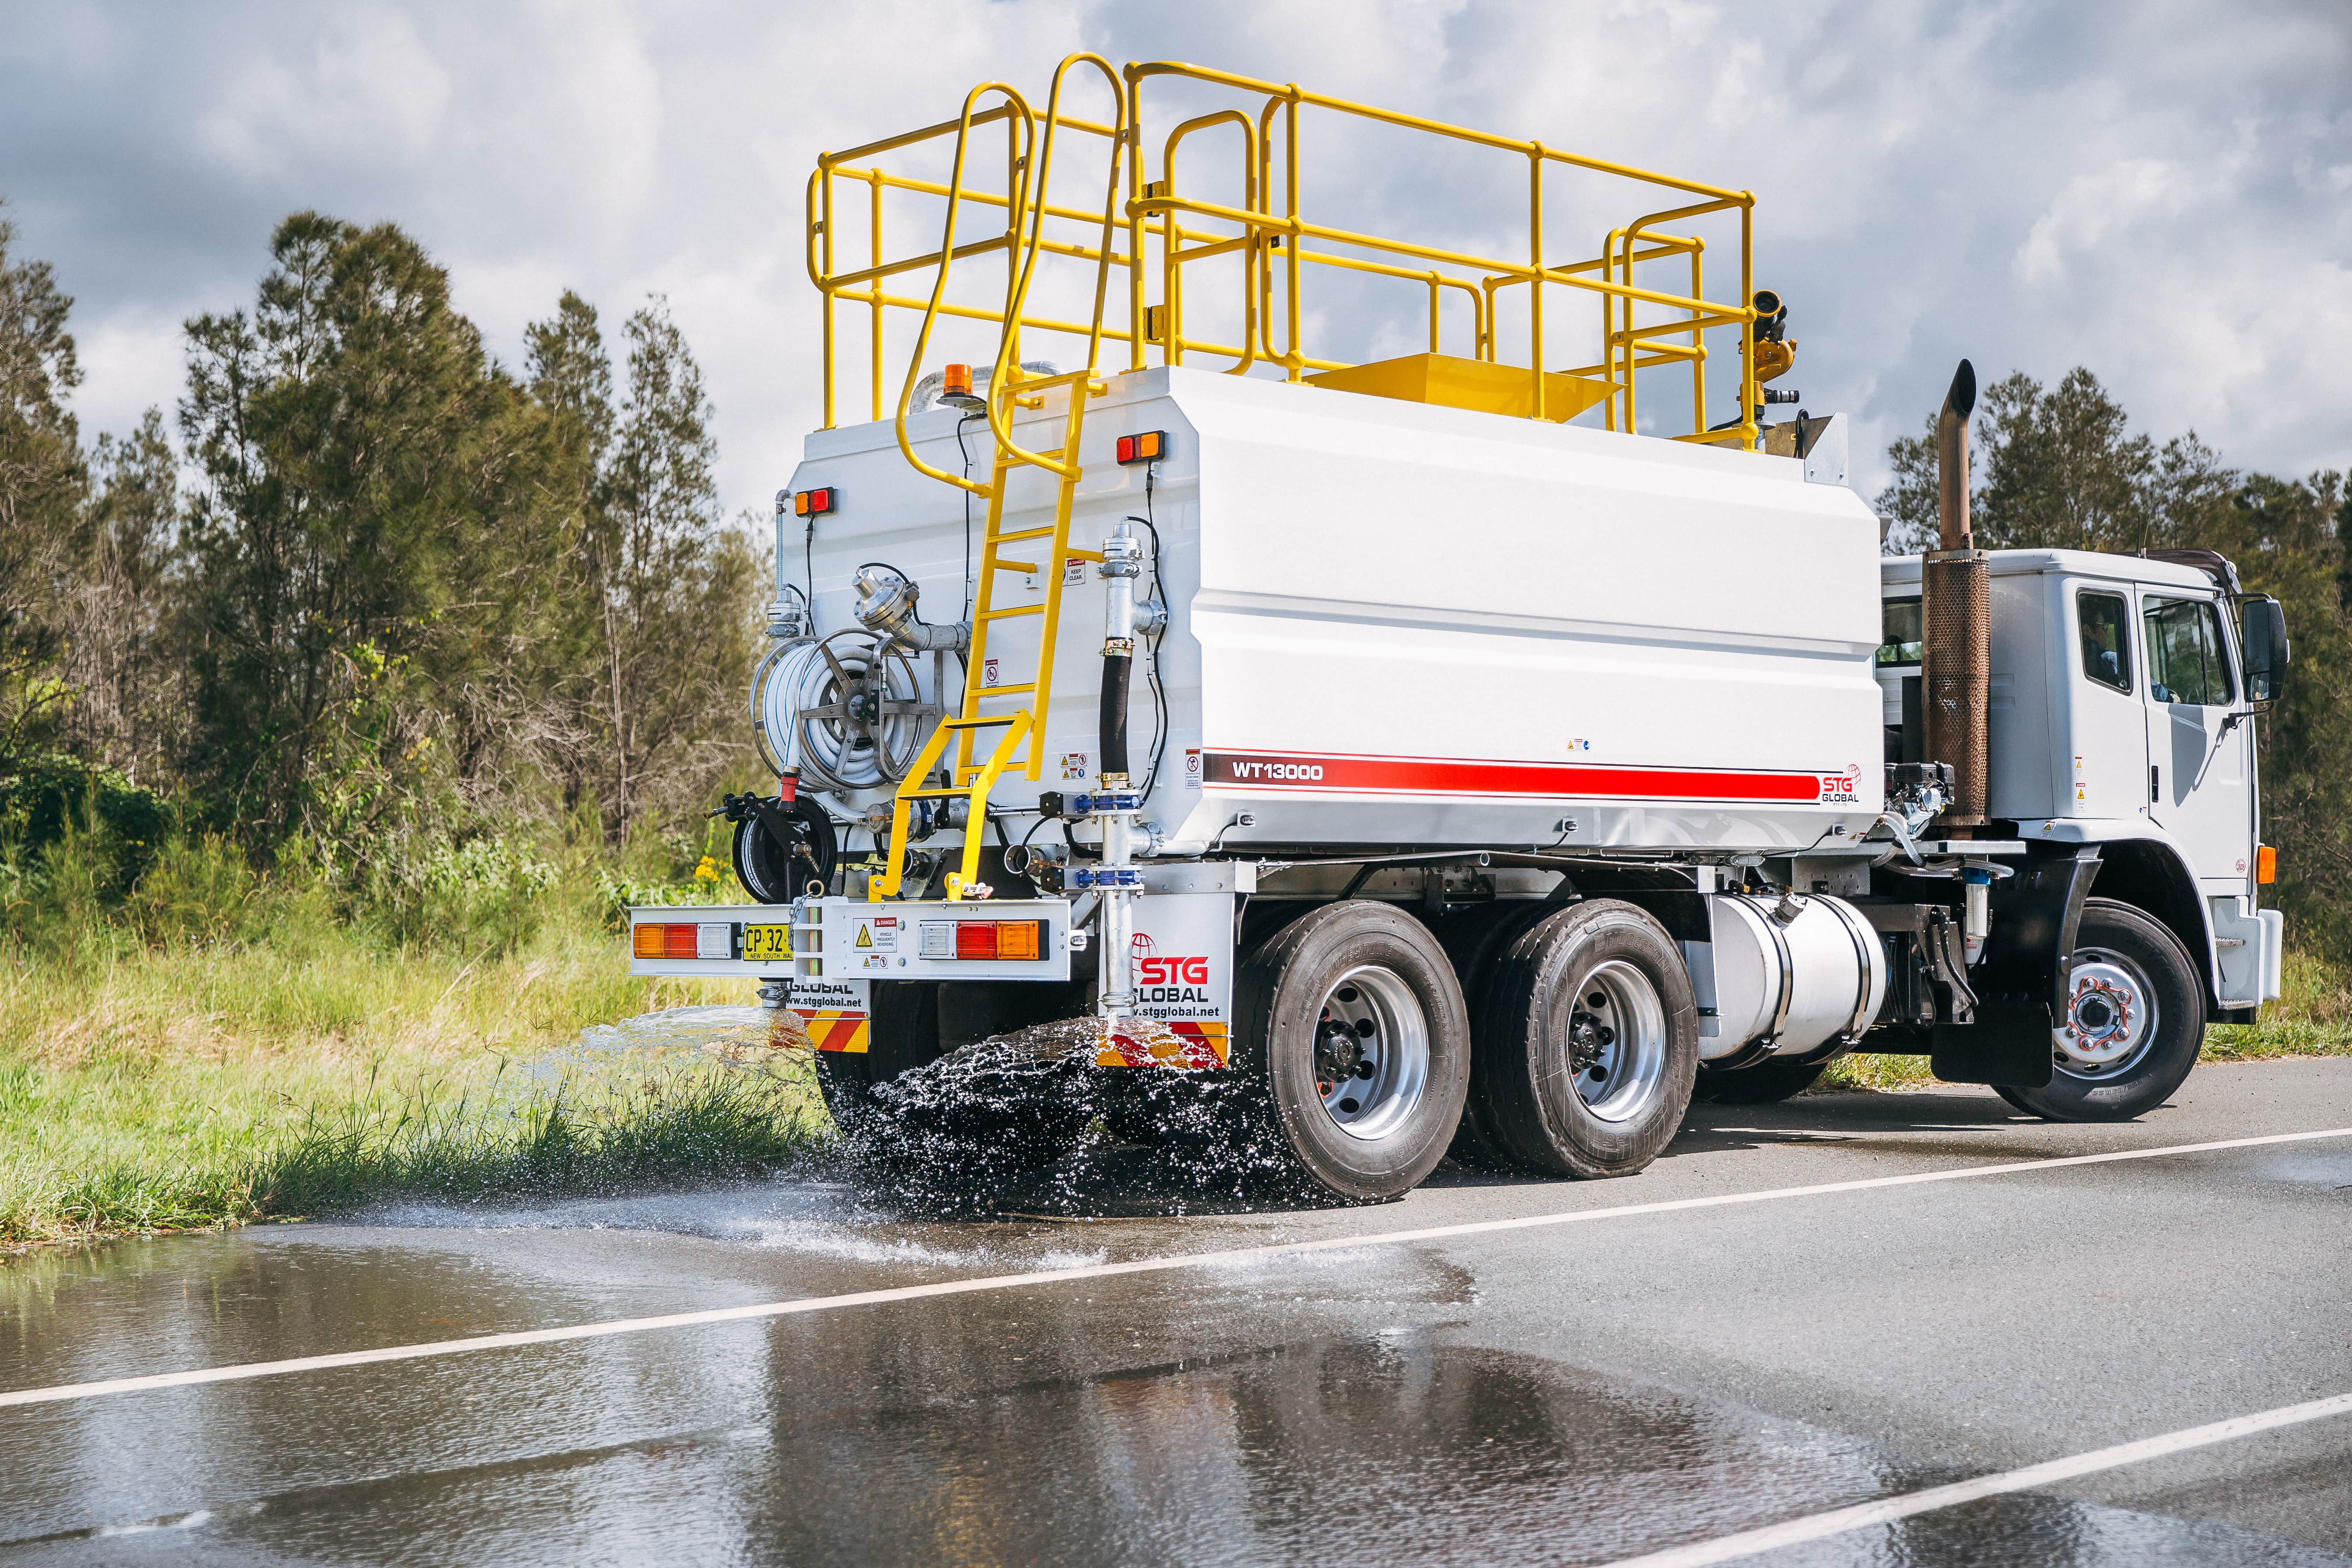 STG Global 2013 Iveco Acco 2350G Auto 6x4 13000 Water Trucks for sale